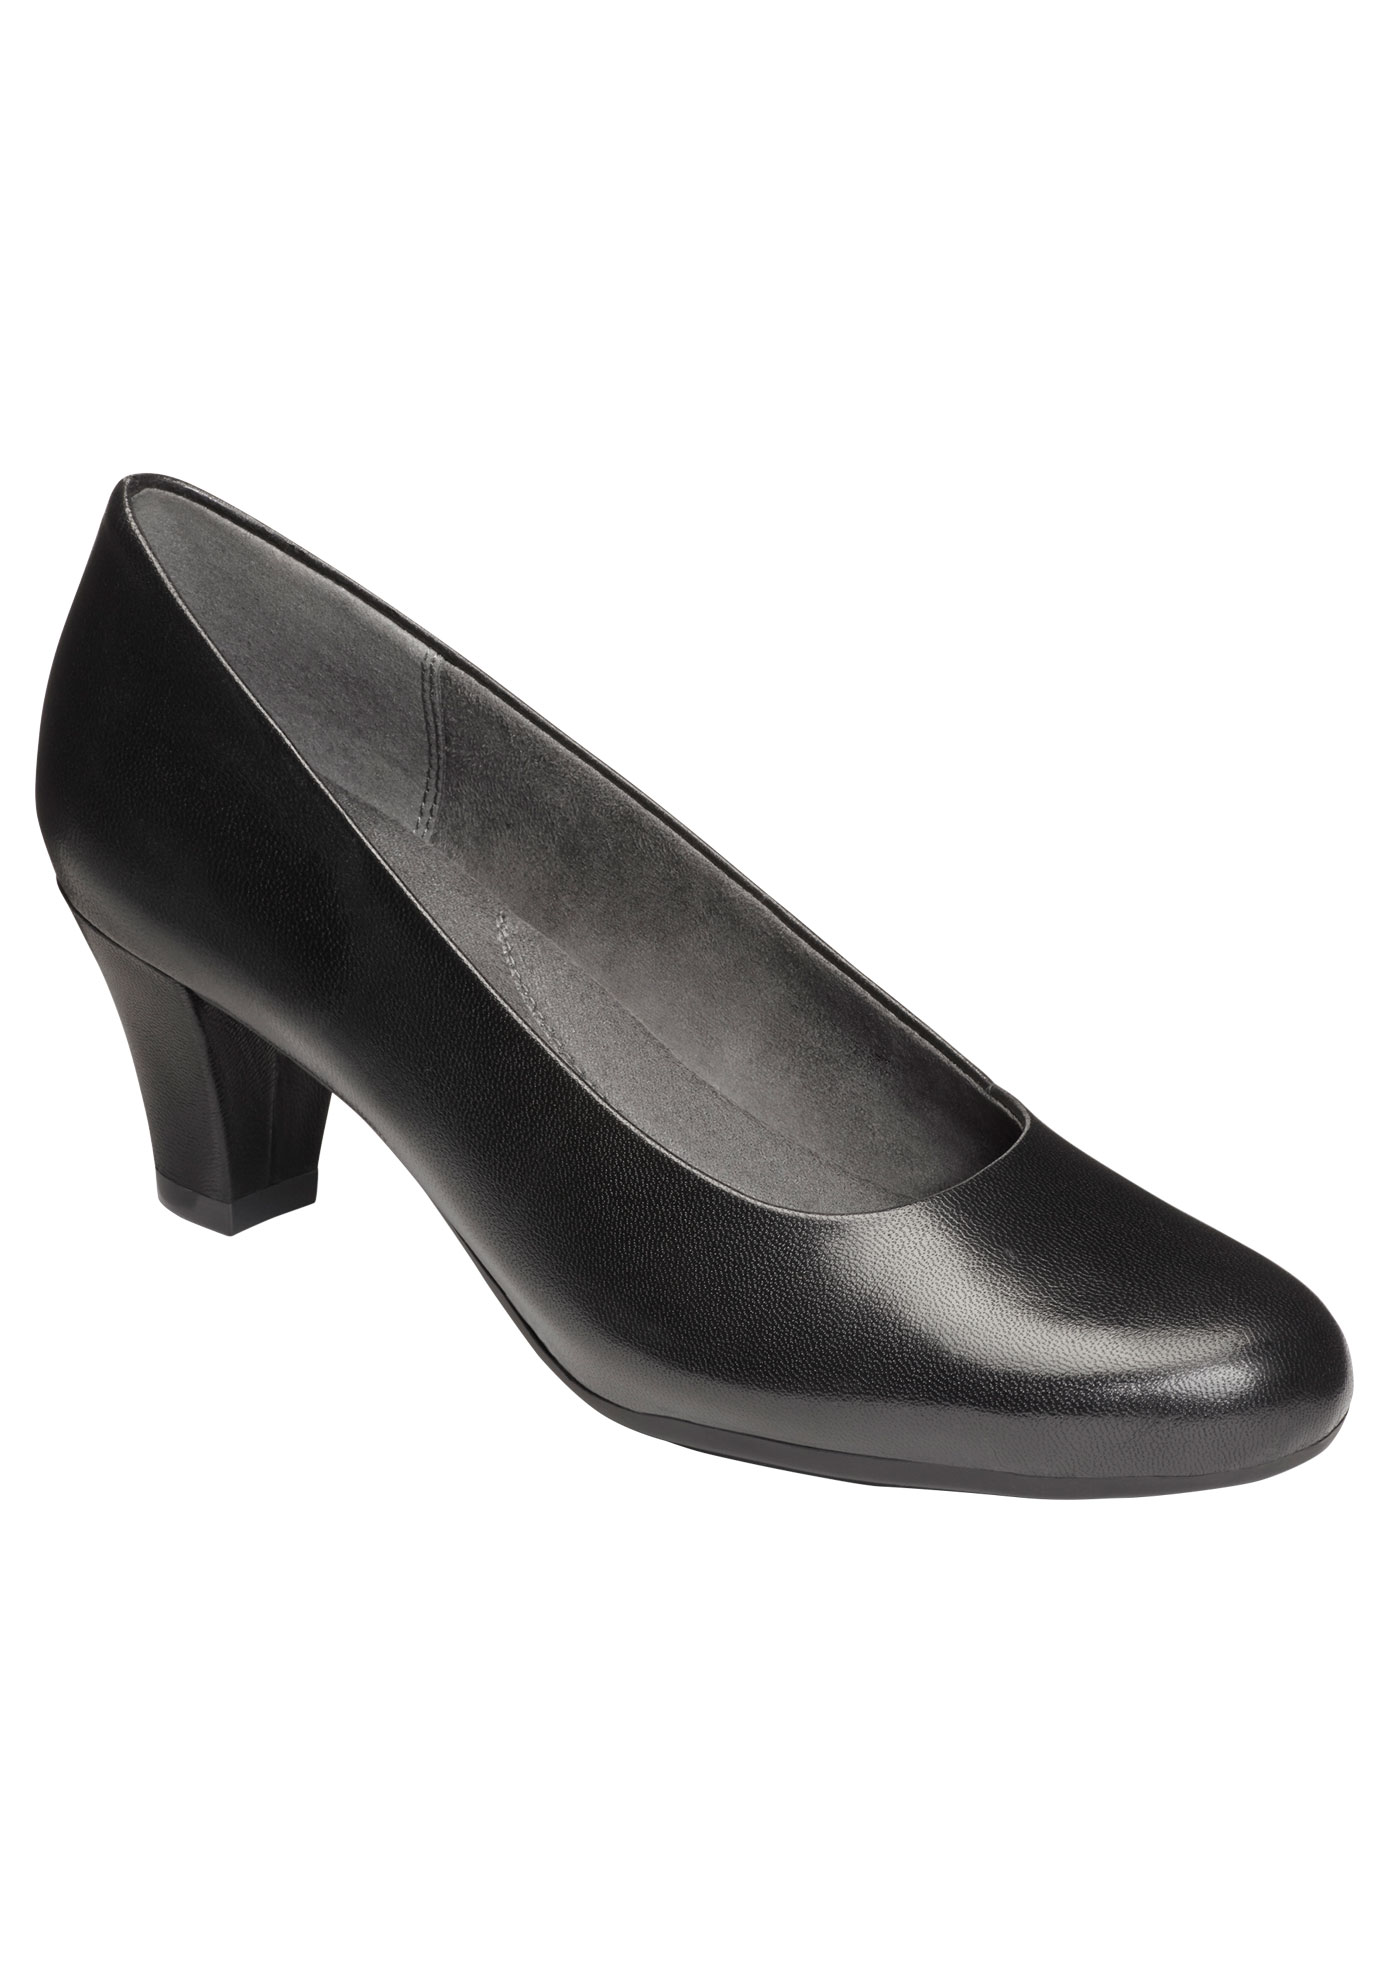 Shore Thing Pumps by Aerosoles®, BLACK LEATHER, hi-res